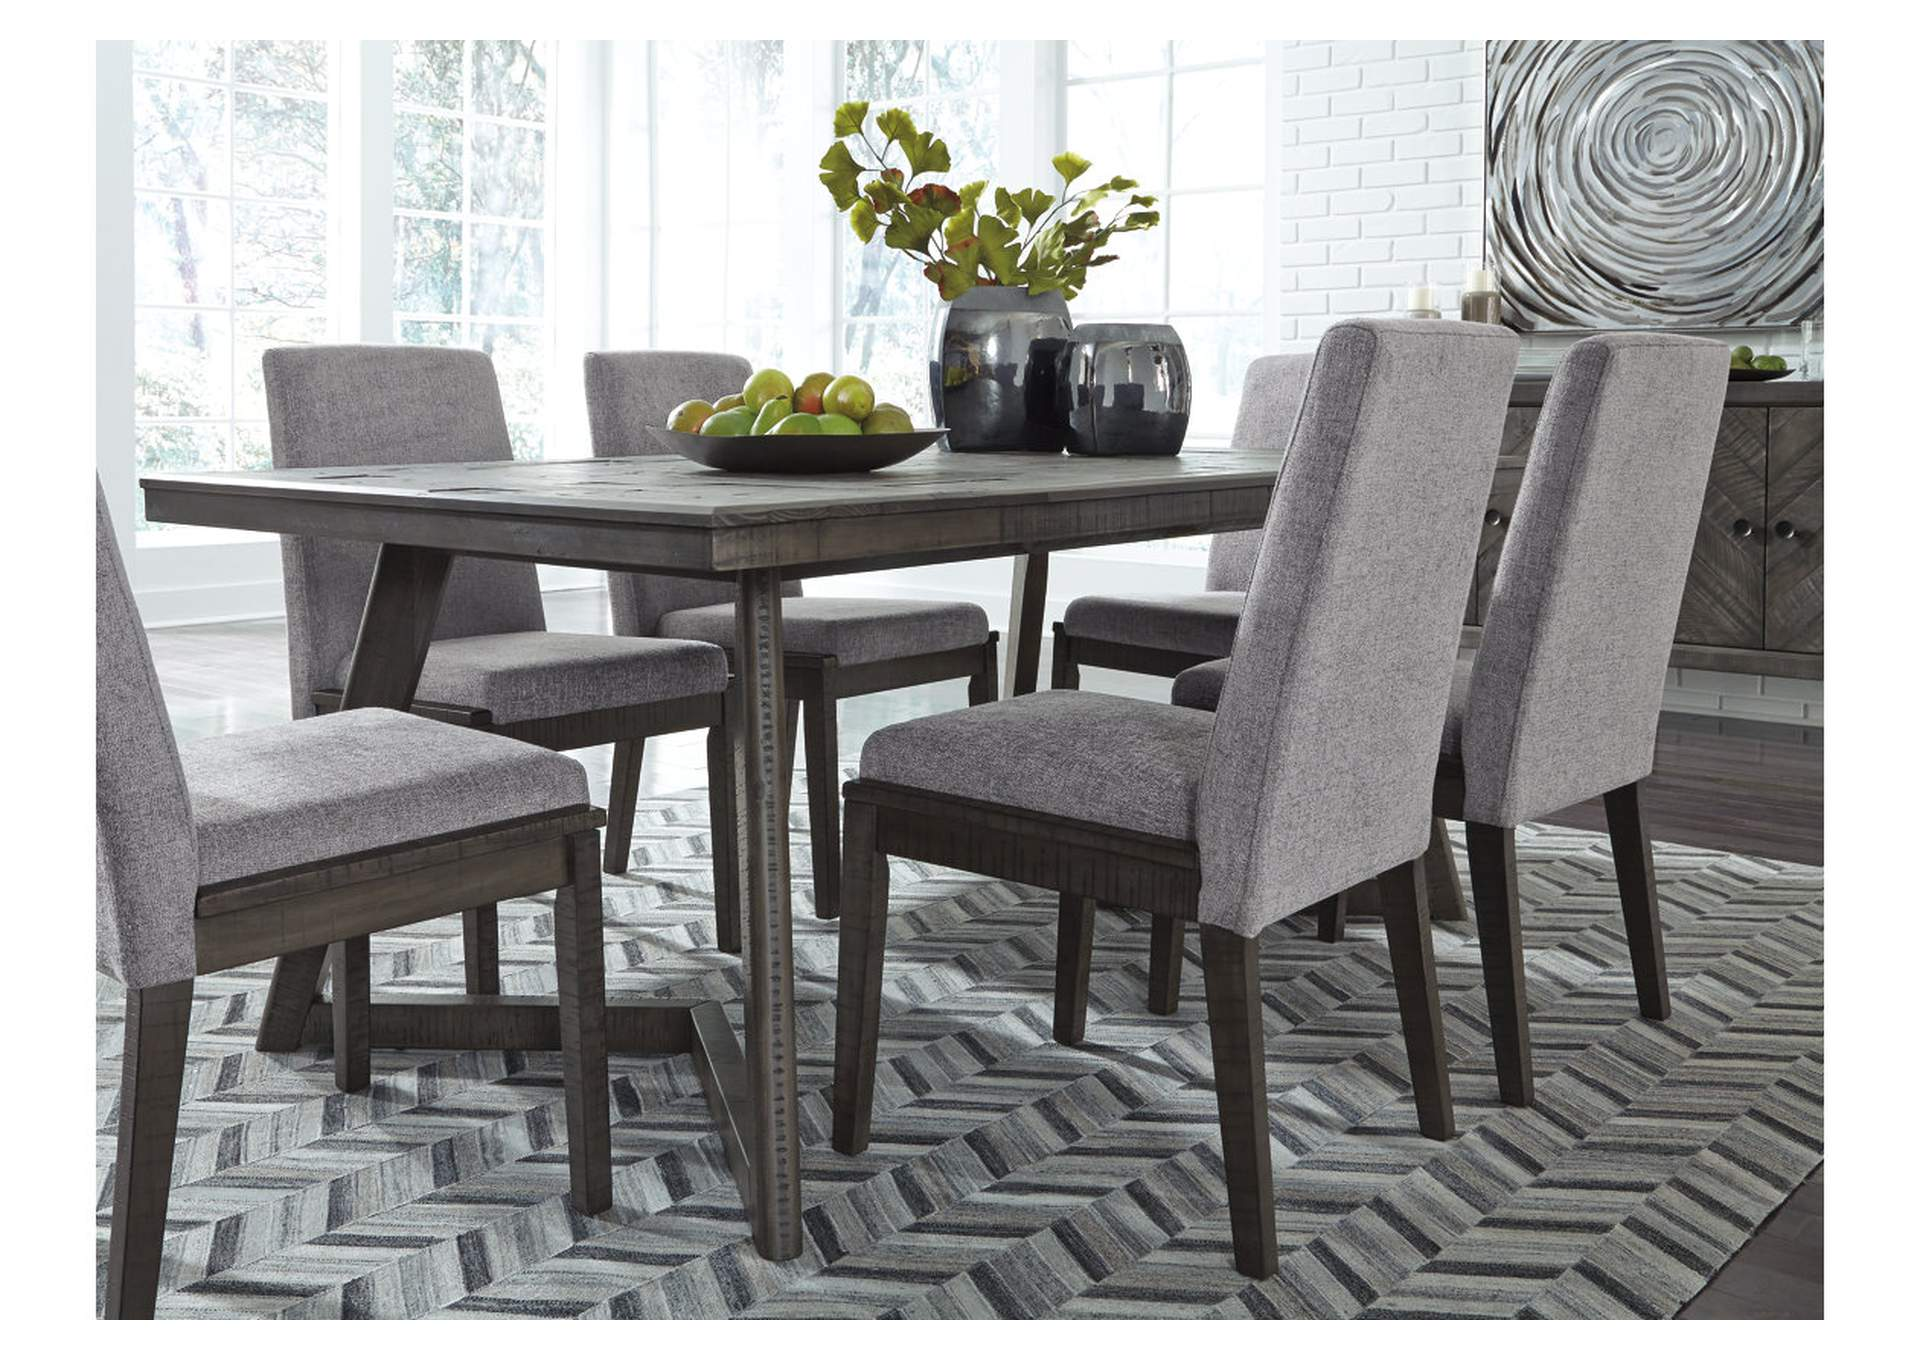 Besteneer Dark Gray Rectangular Dining Room Table,Signature Design By Ashley